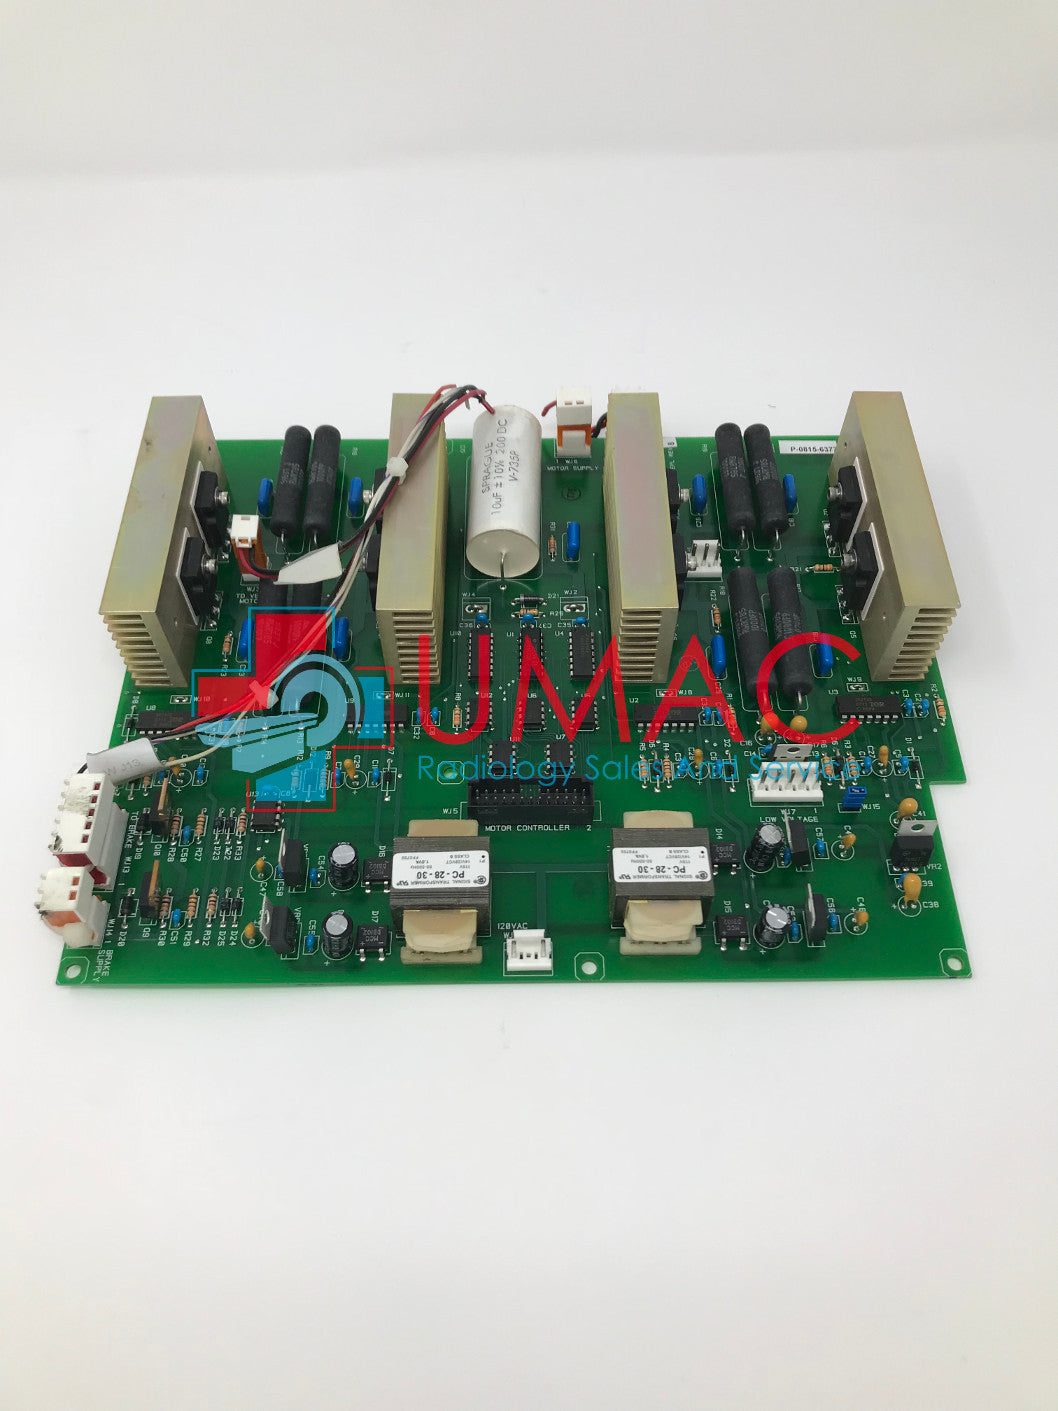 Hologic Selenia Mammography ASY-1-003-0303 Motor Drive Control Board